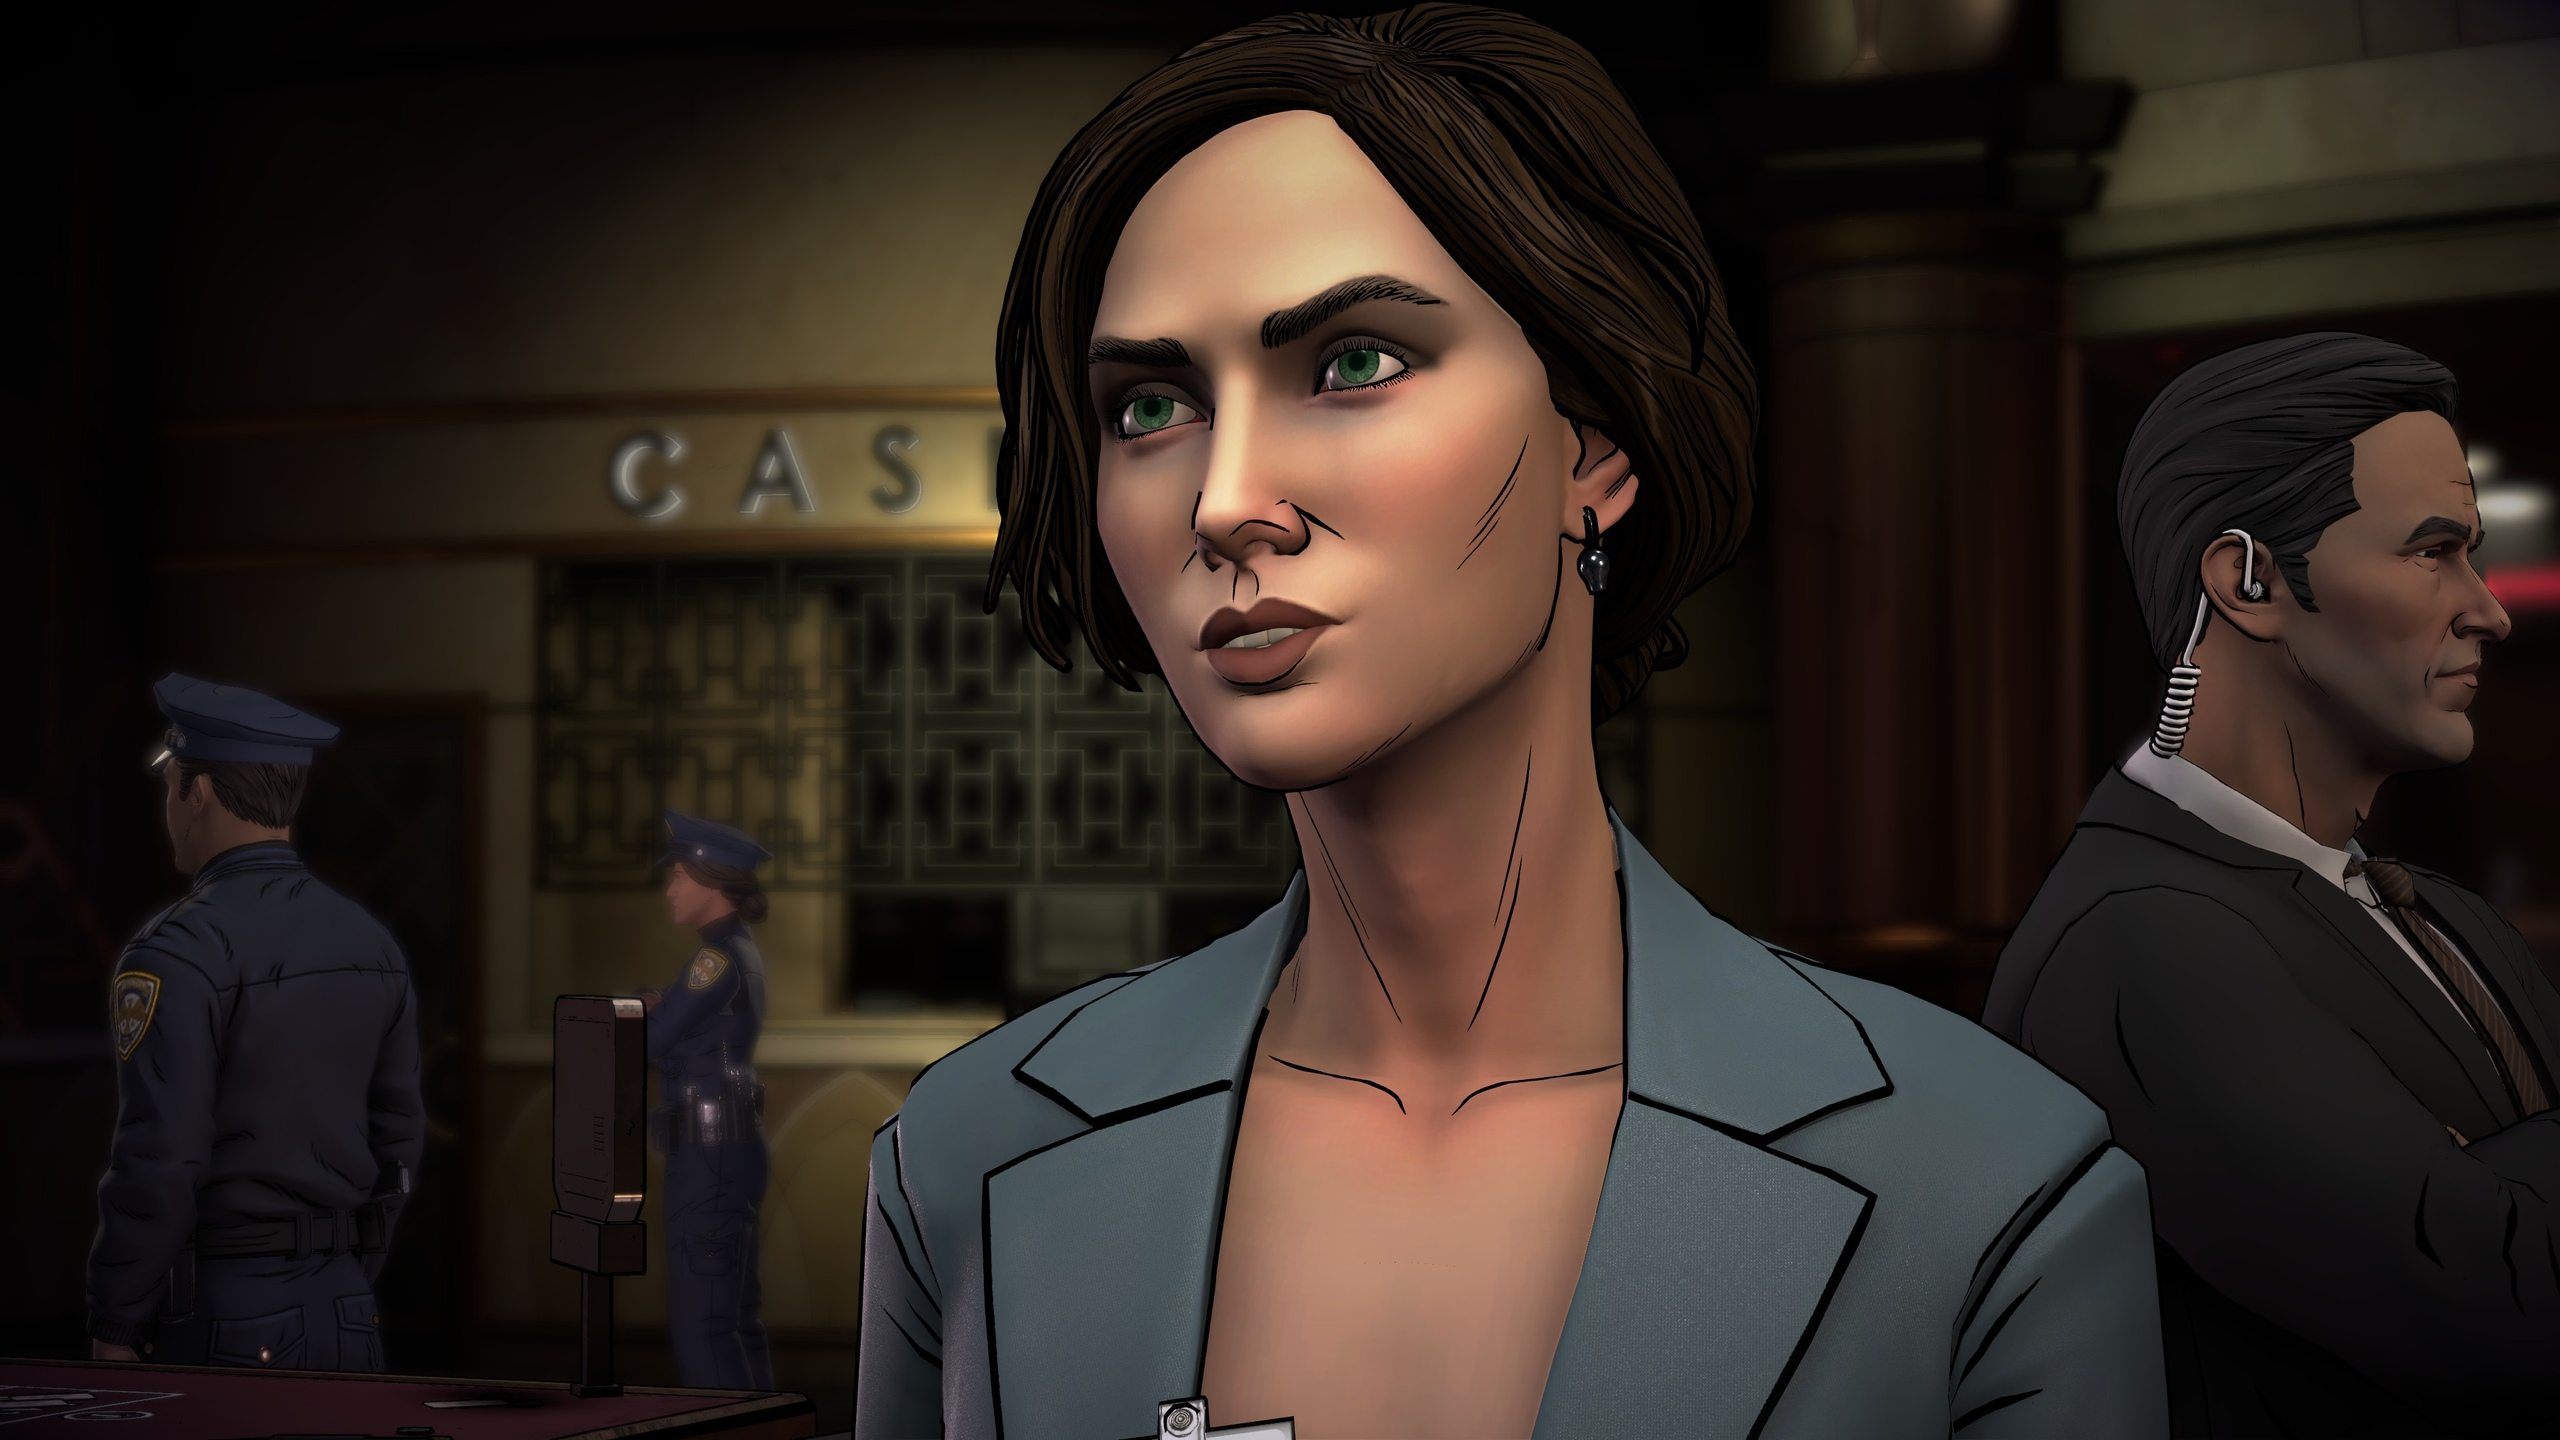 Iman Avesta (Batman: The Telltale Series)